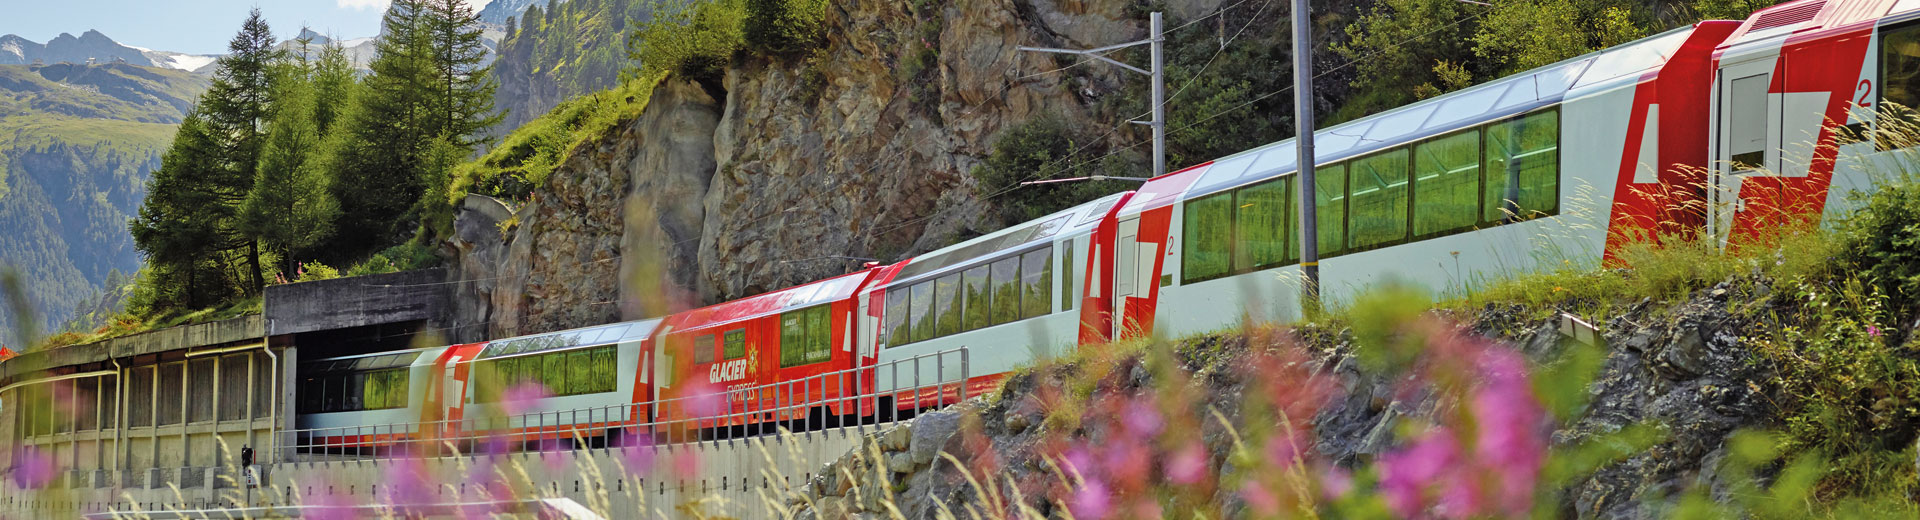 Gruppenreise Glacier Express - Package Select